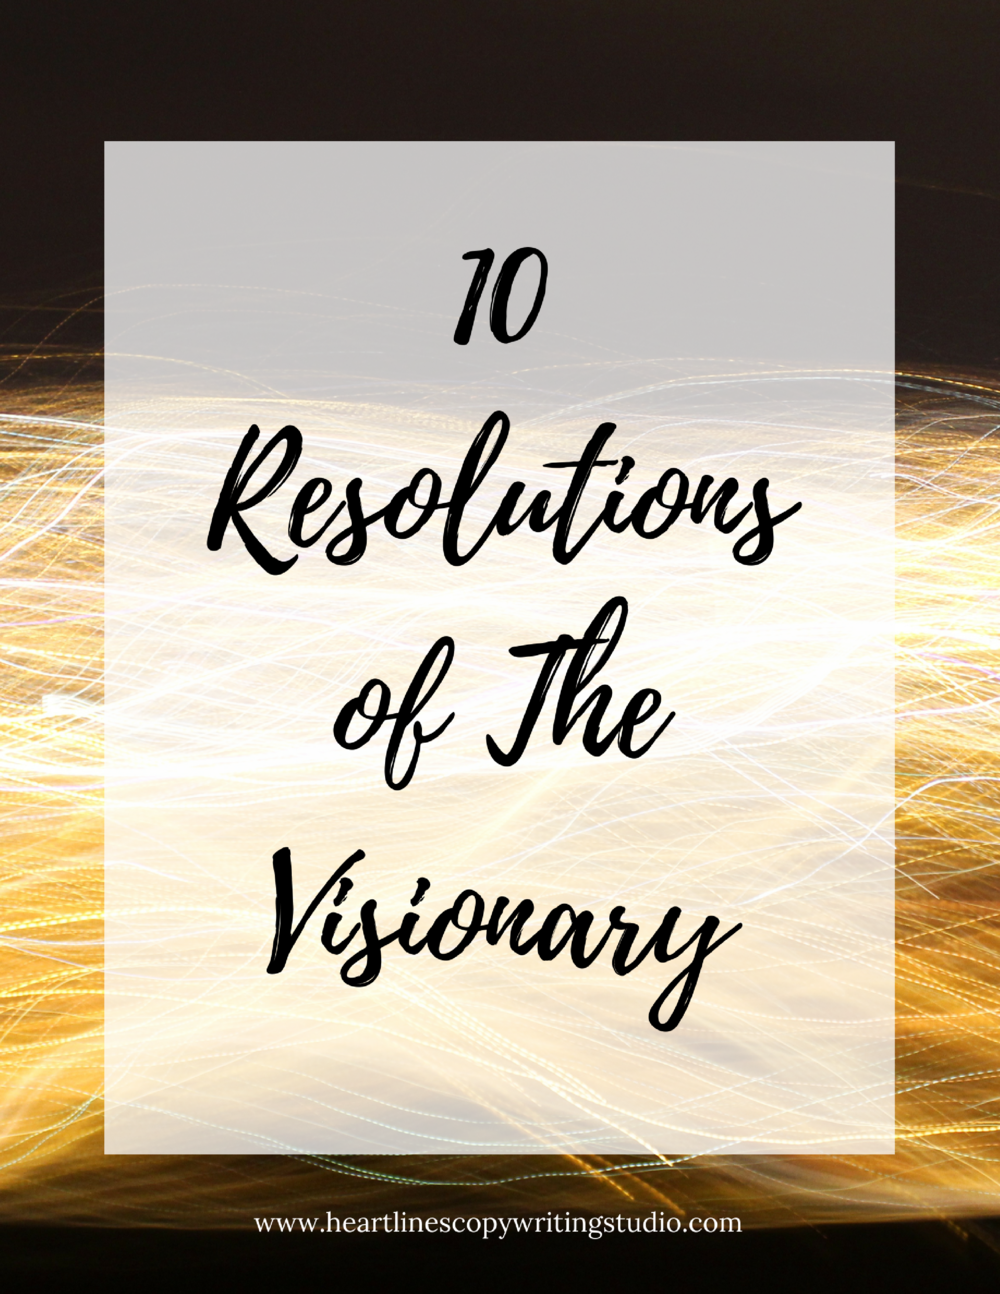 Download the PDF version of The 10 Resolutions of The Visionary right here.